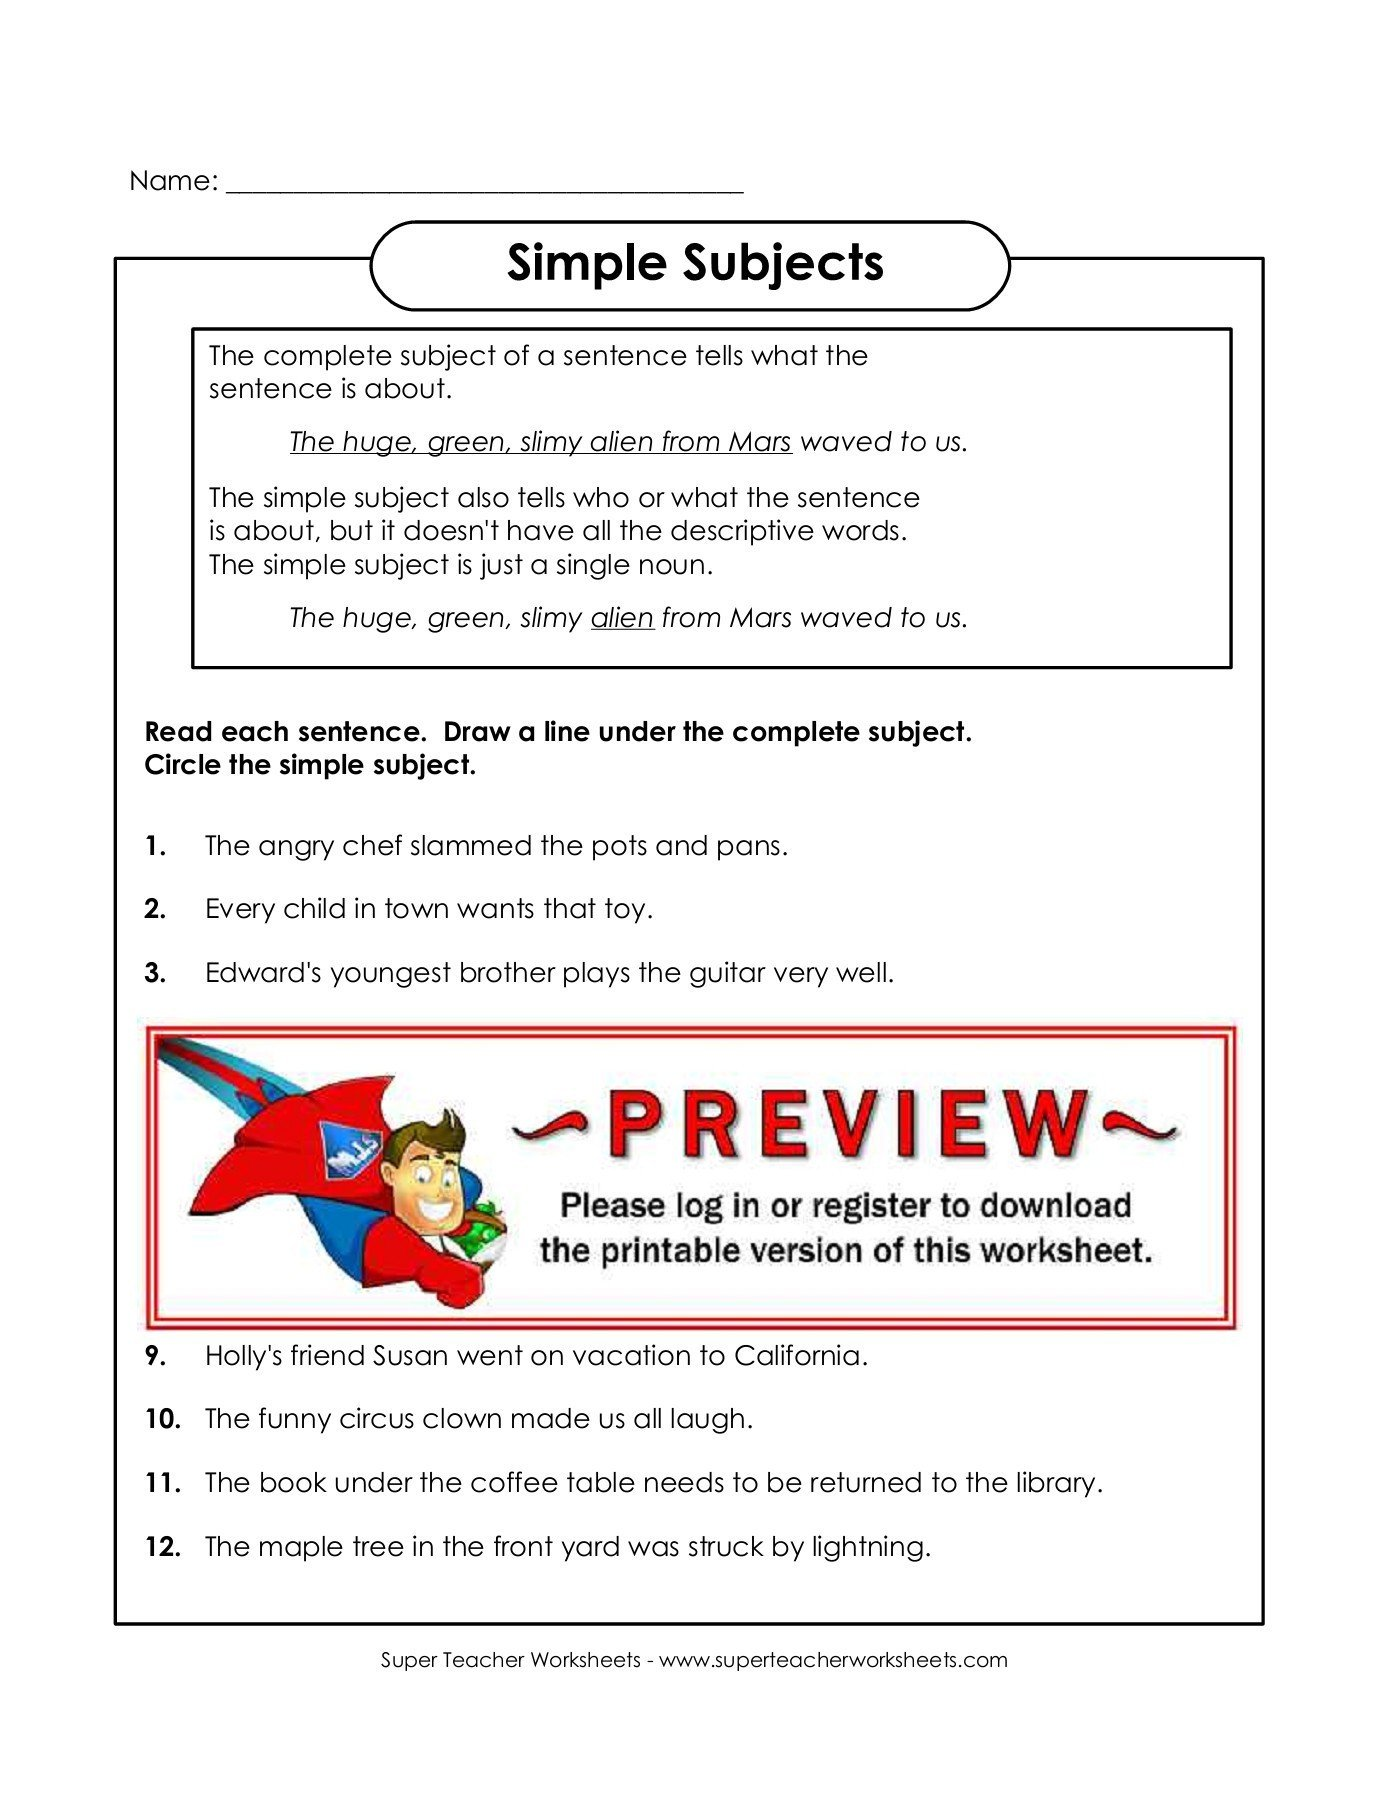 Super Teacher Worksheet Login Simple Subjects Super Teacher Worksheets